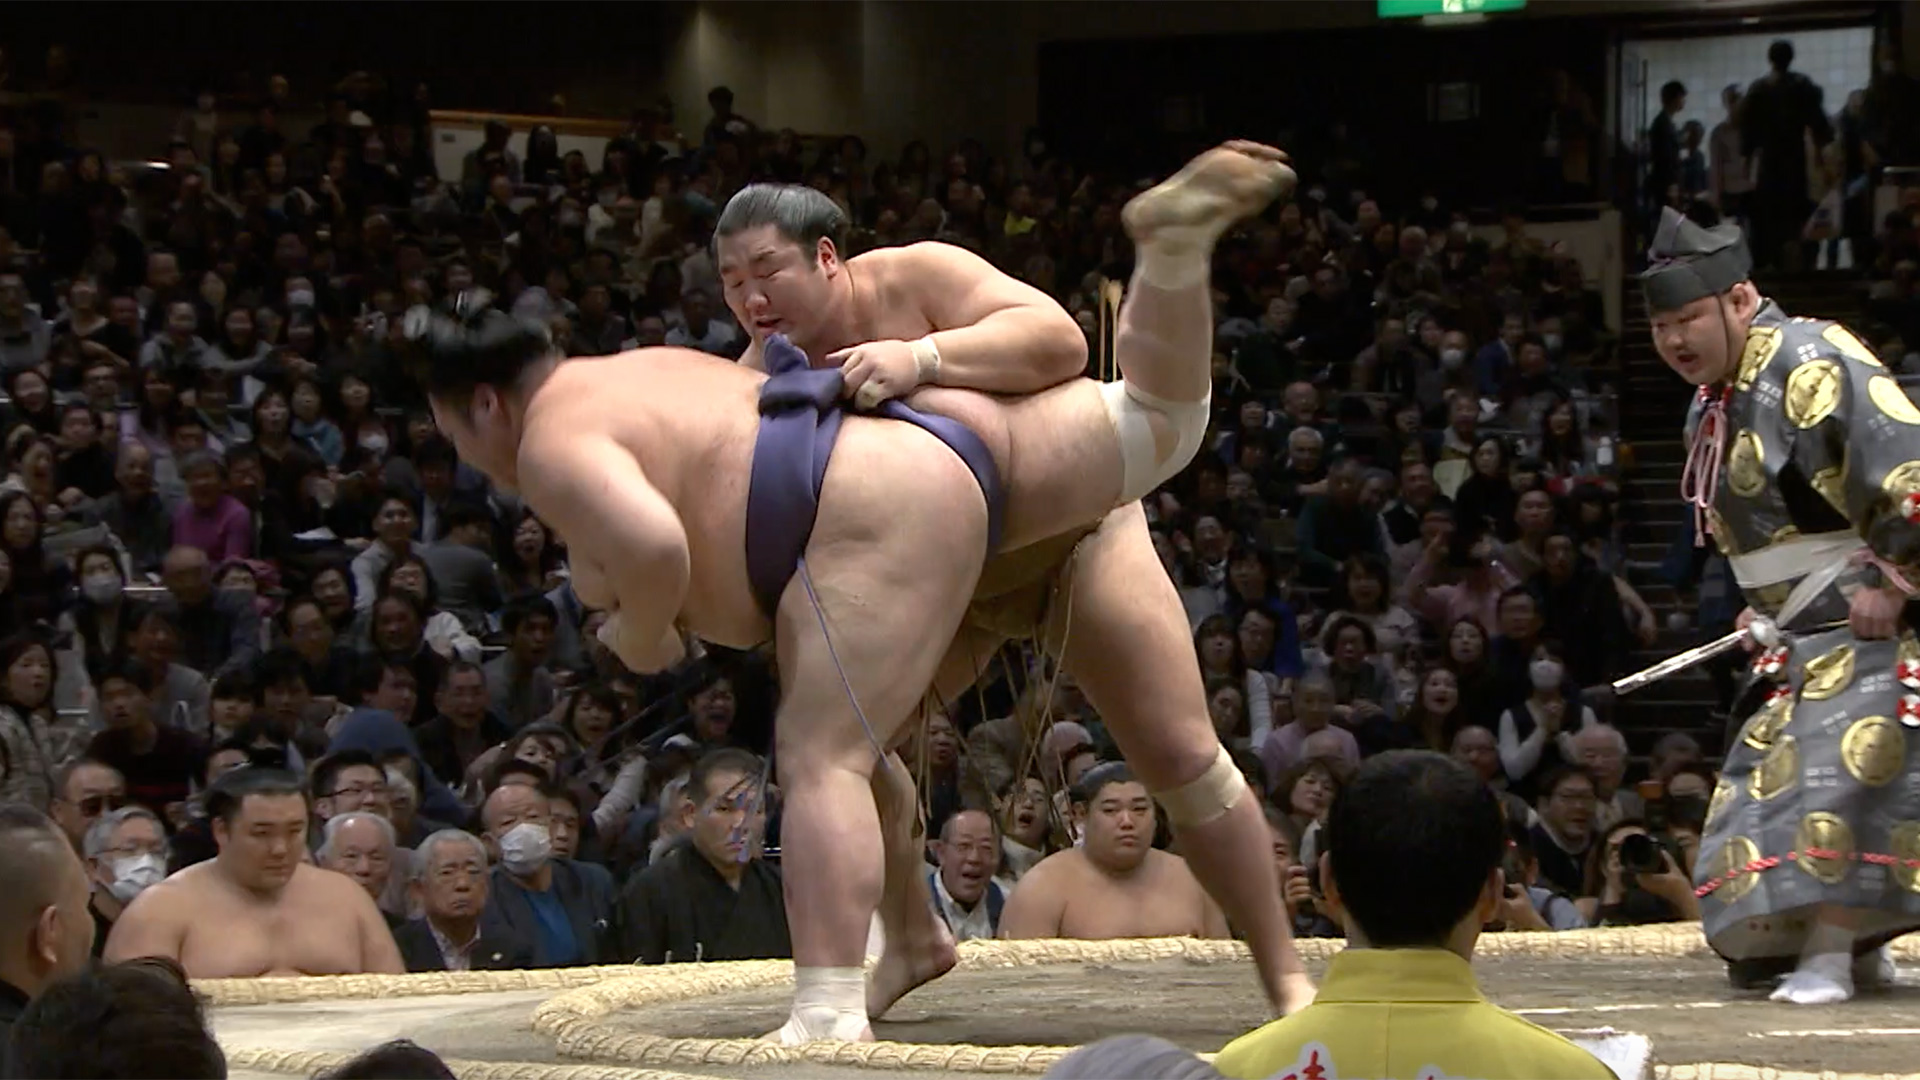 Okuri-nage/Rear throw down